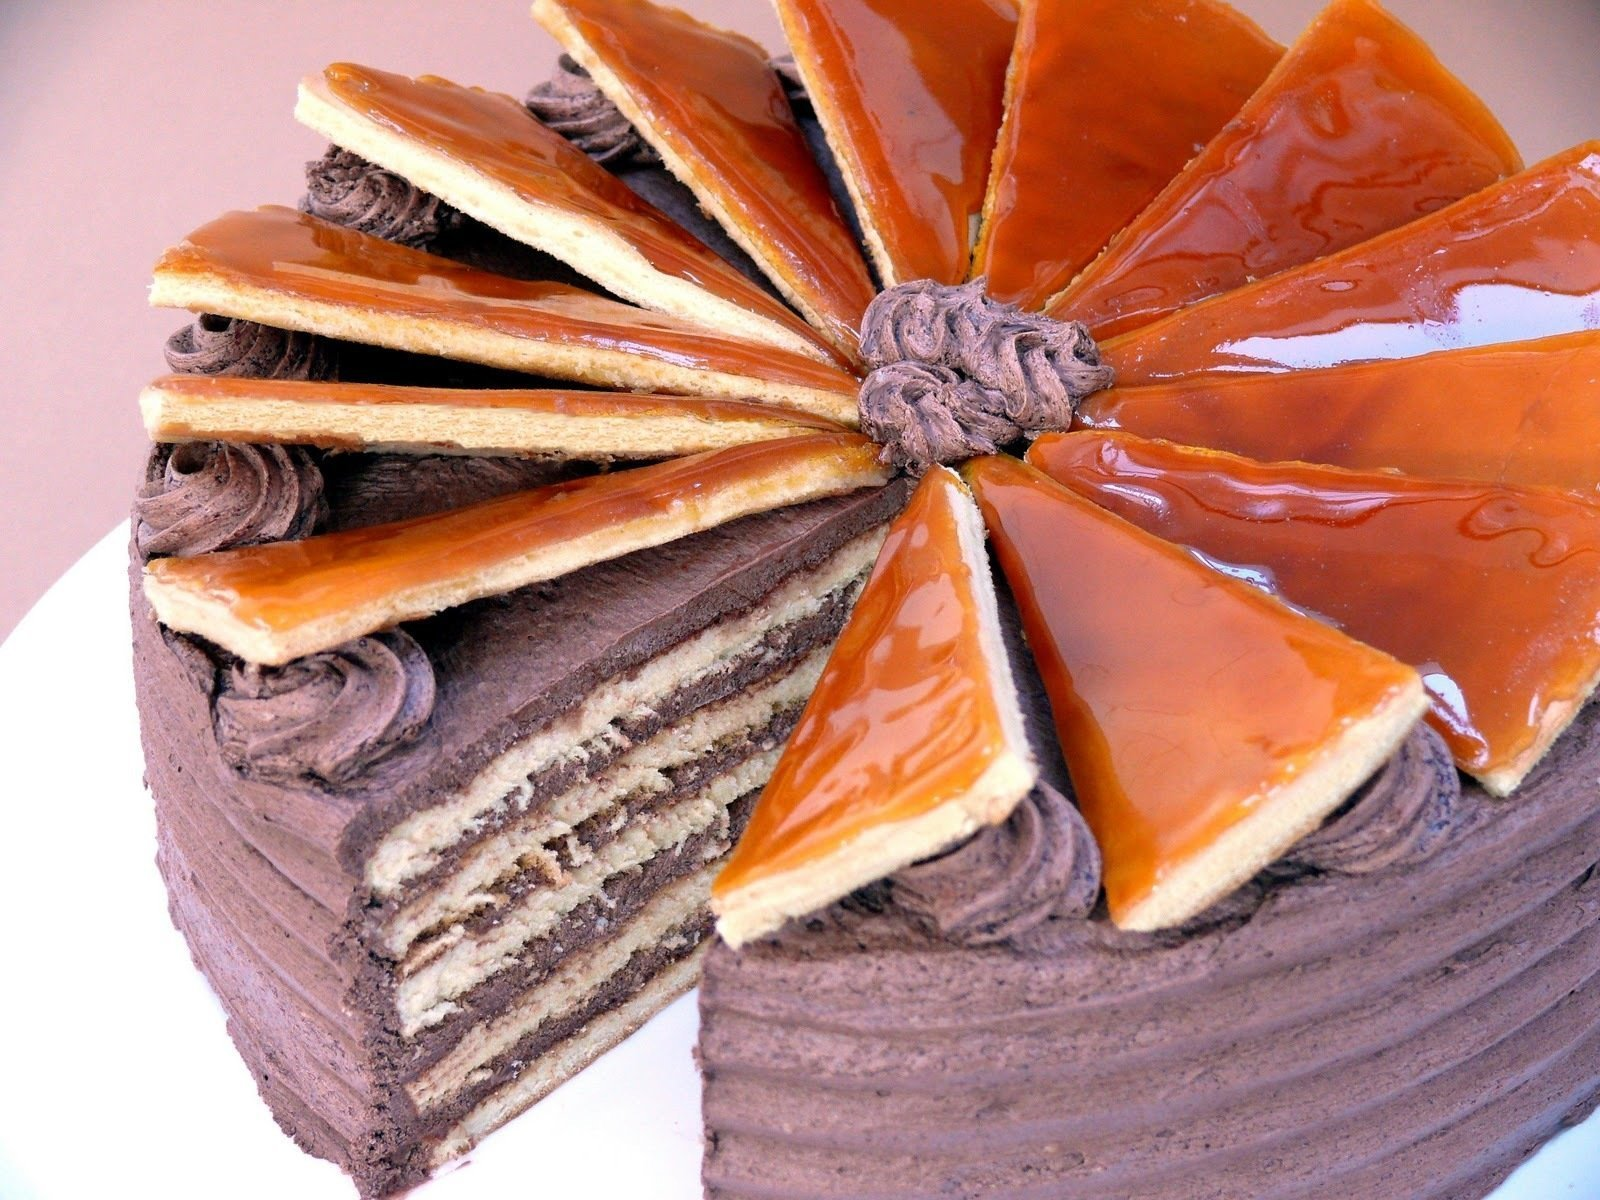 The real Dobos Cake that conquered the world